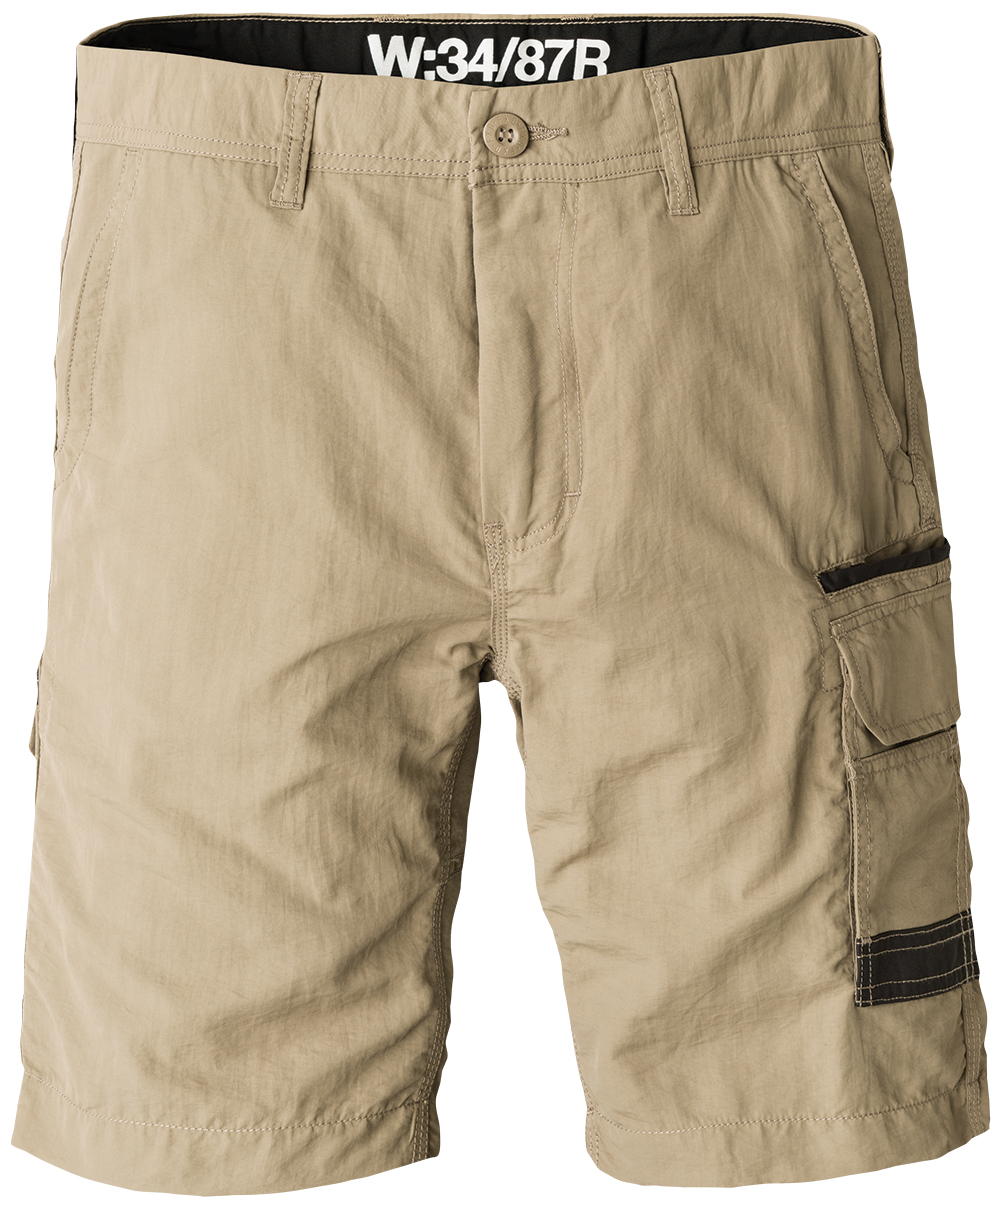 FXD Workwear LS-1 work shorts khaki